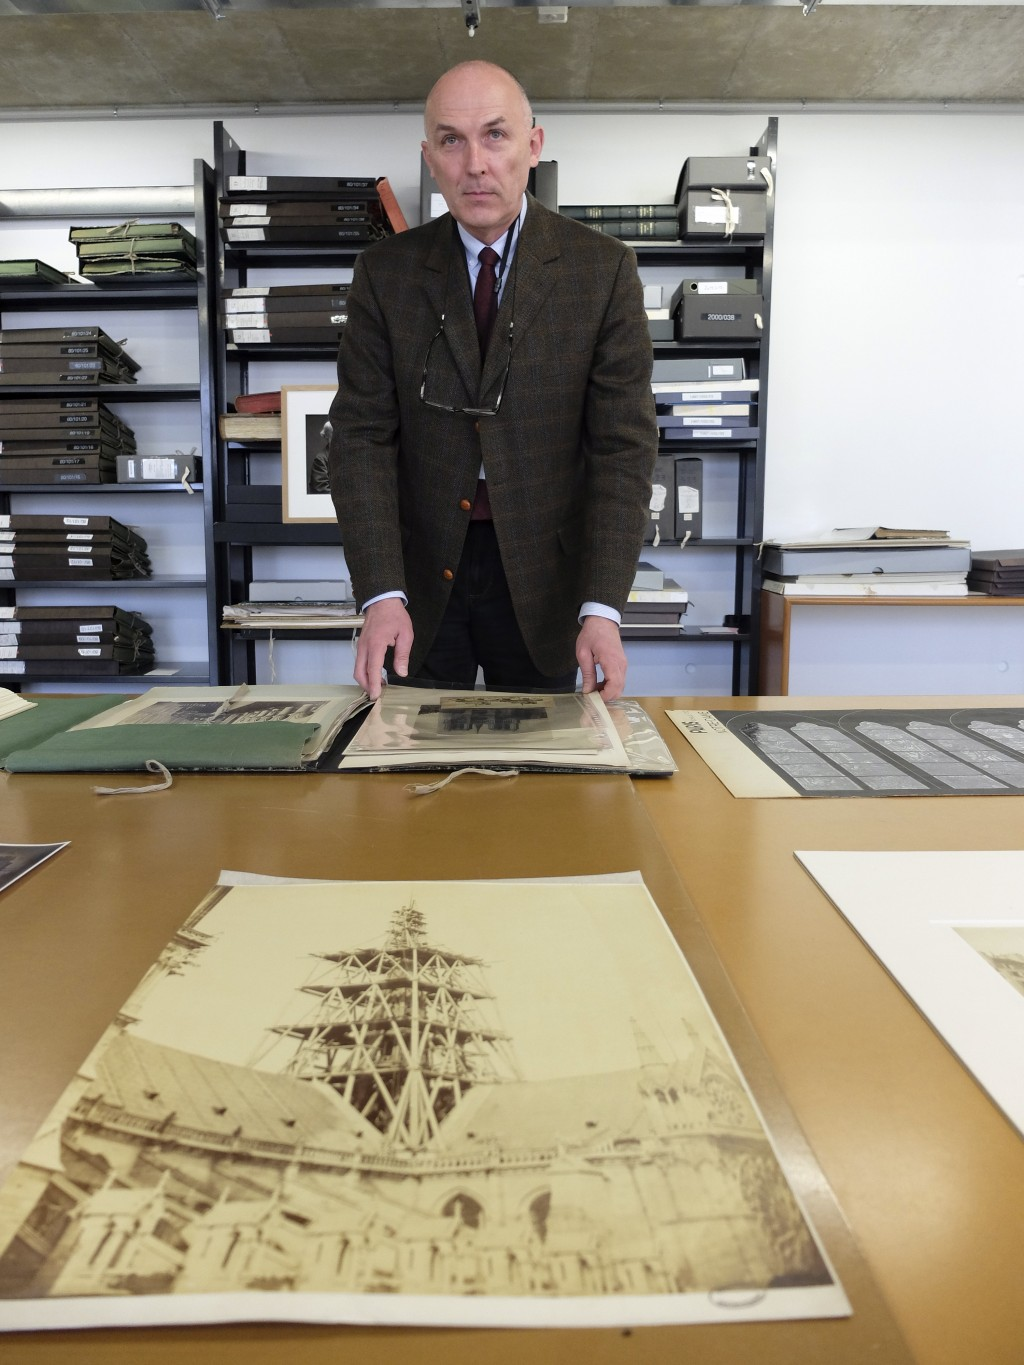 Jean-Charles Forgeret poses with archives documents related to Notre Dame cathedral in Charenton le Pont, outside Paris, Thursday, April 18, 2019. The